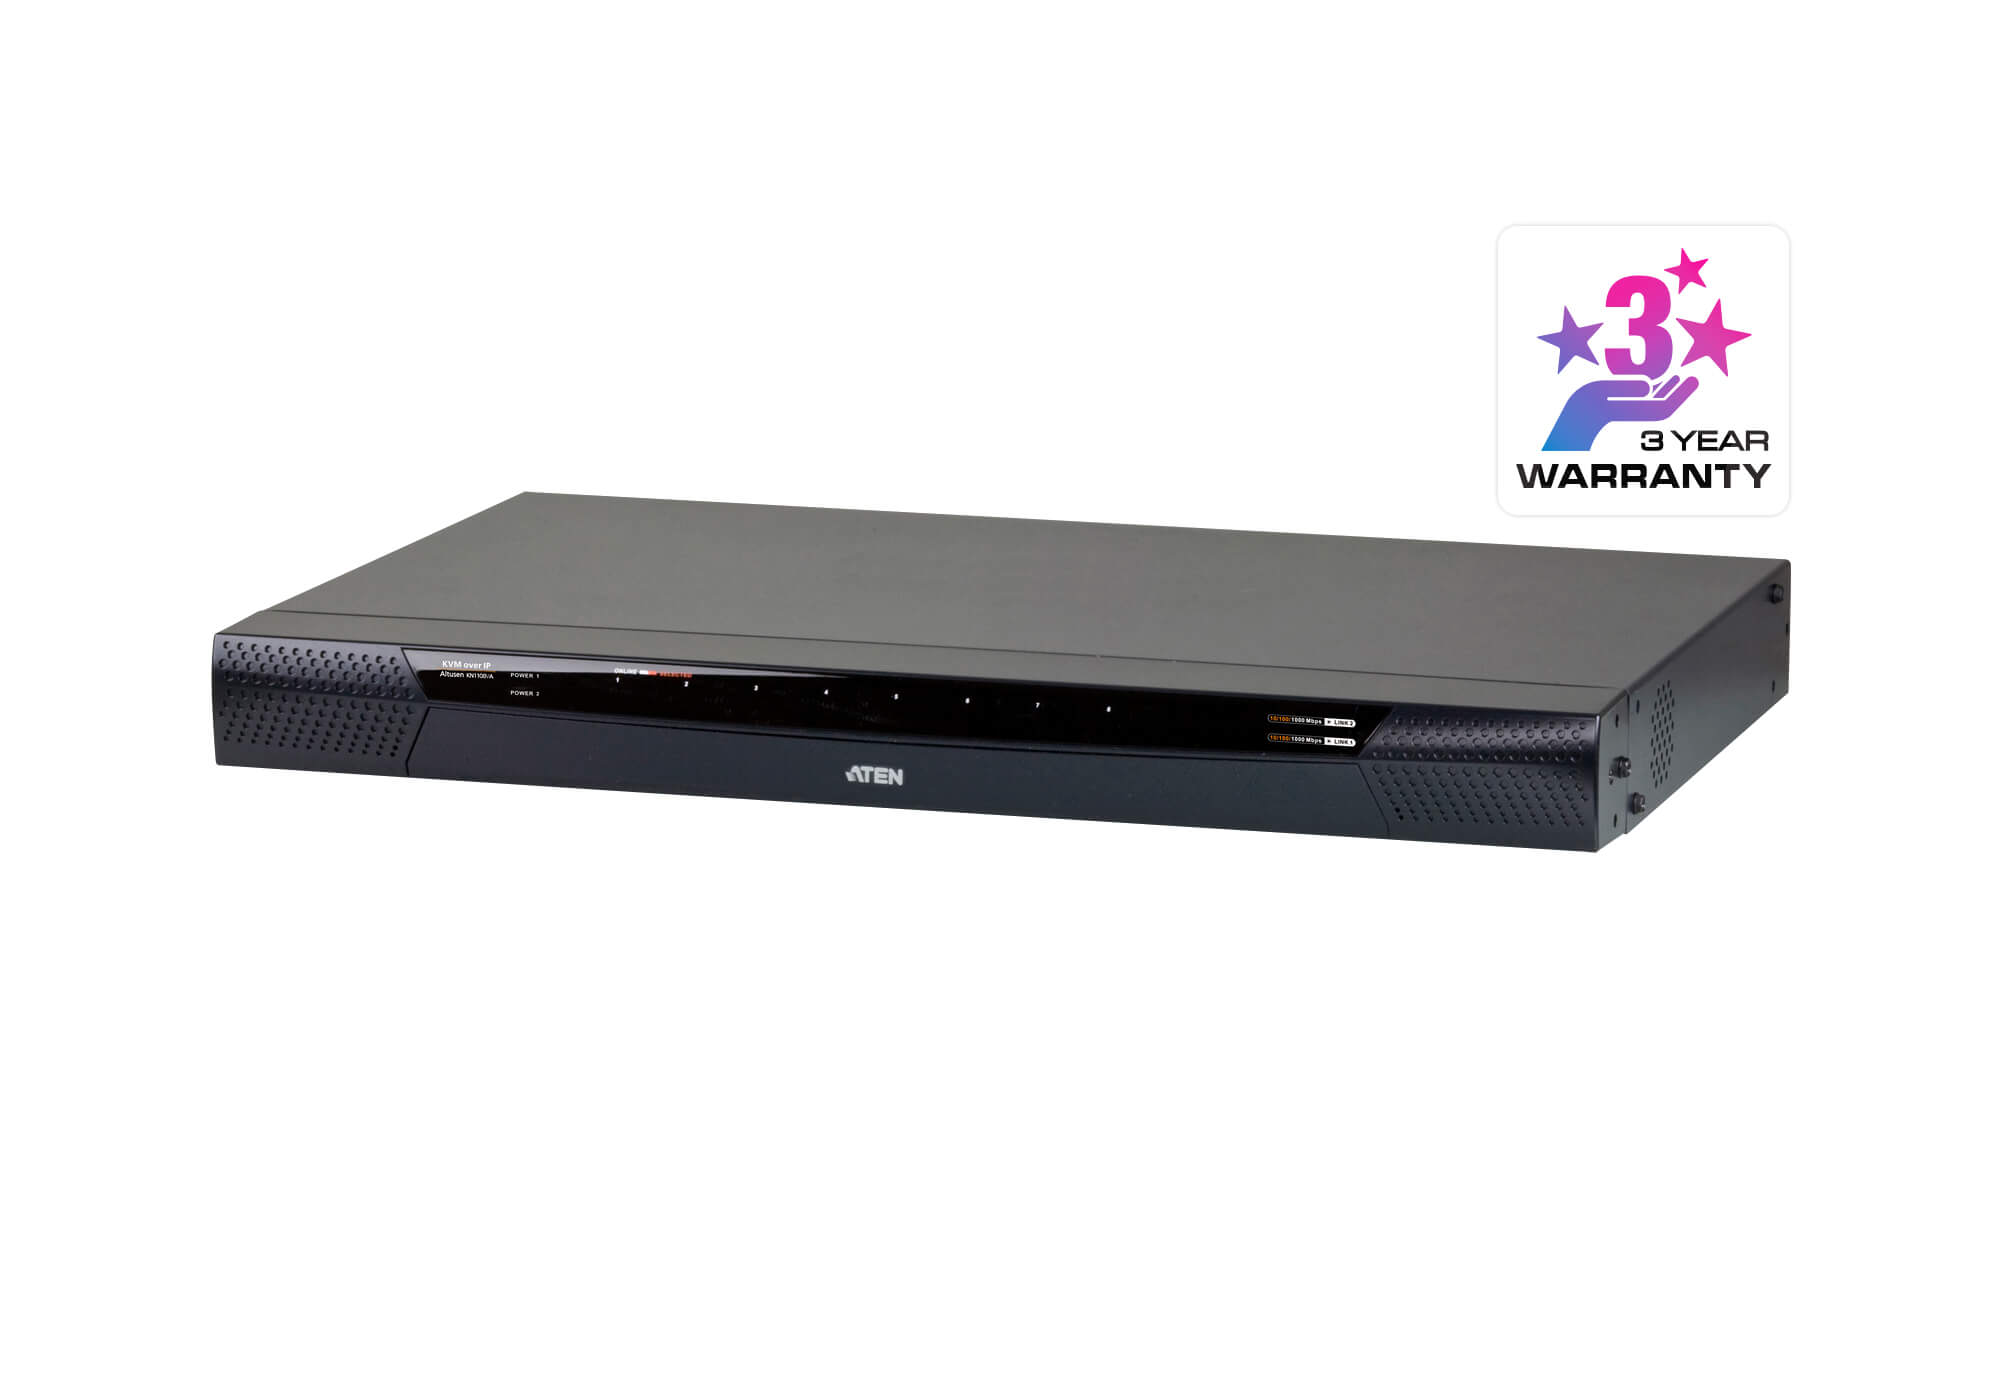 1-Local/1-Remote Access 8-Port Cat 5 KVM over IP Switch with Virtual Media (1920 x 1200)-2